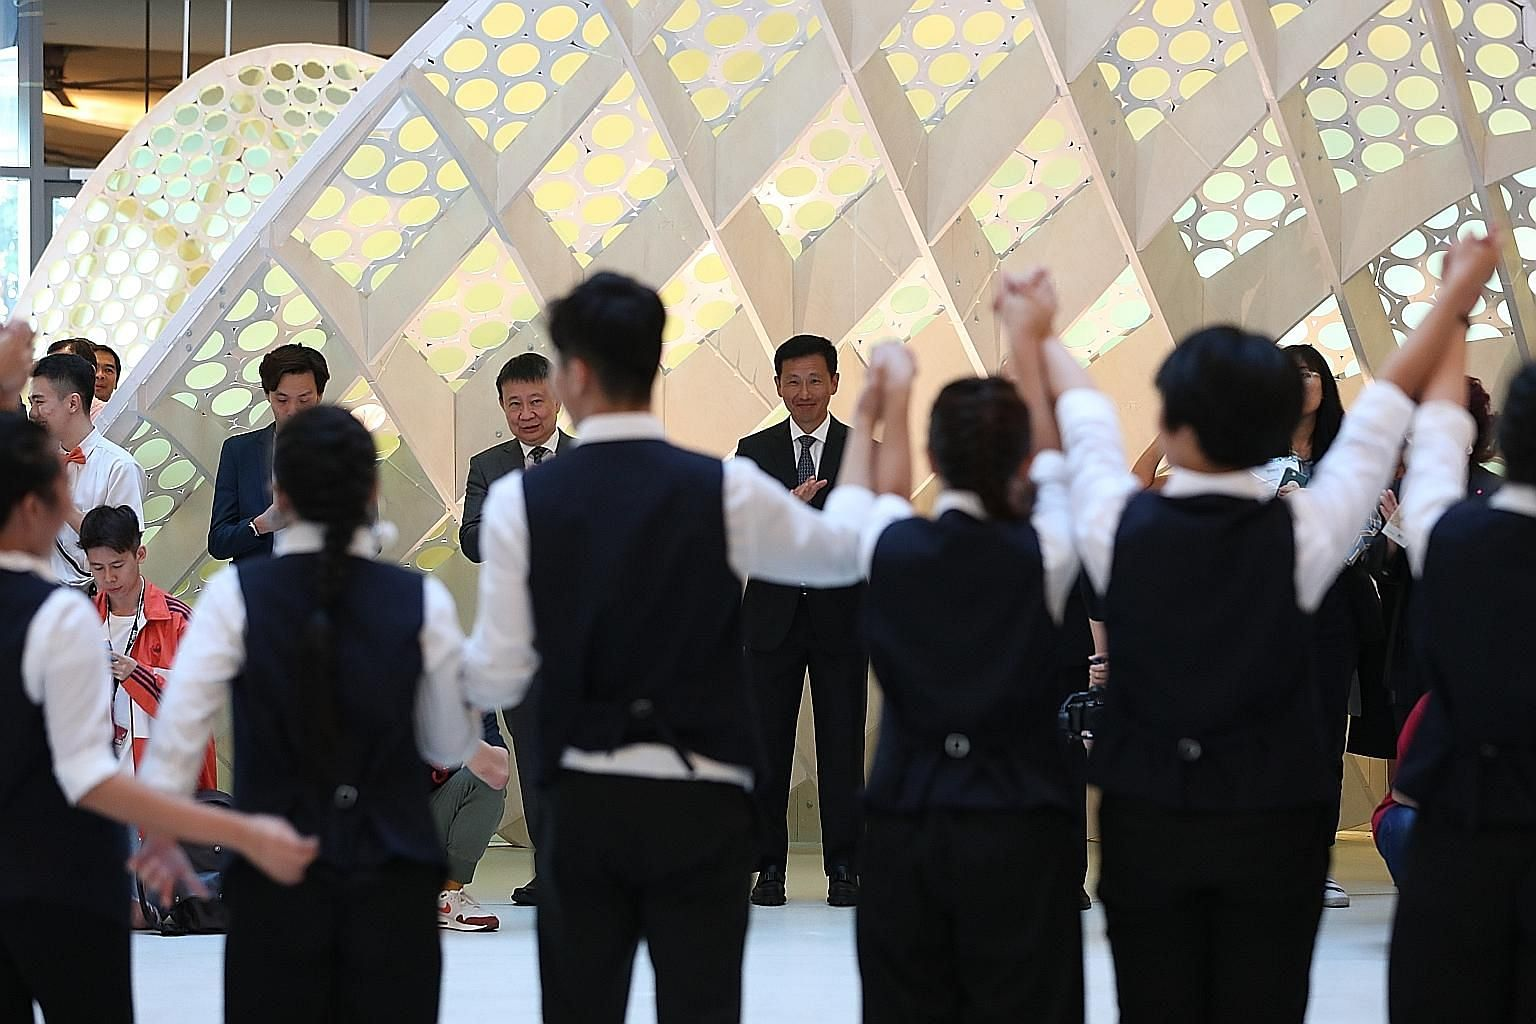 Education Minister Ong Ye Kung (centre) watching a dance performance during the Singapore University of Technology and Design's 10th anniversary celebration yesterday.